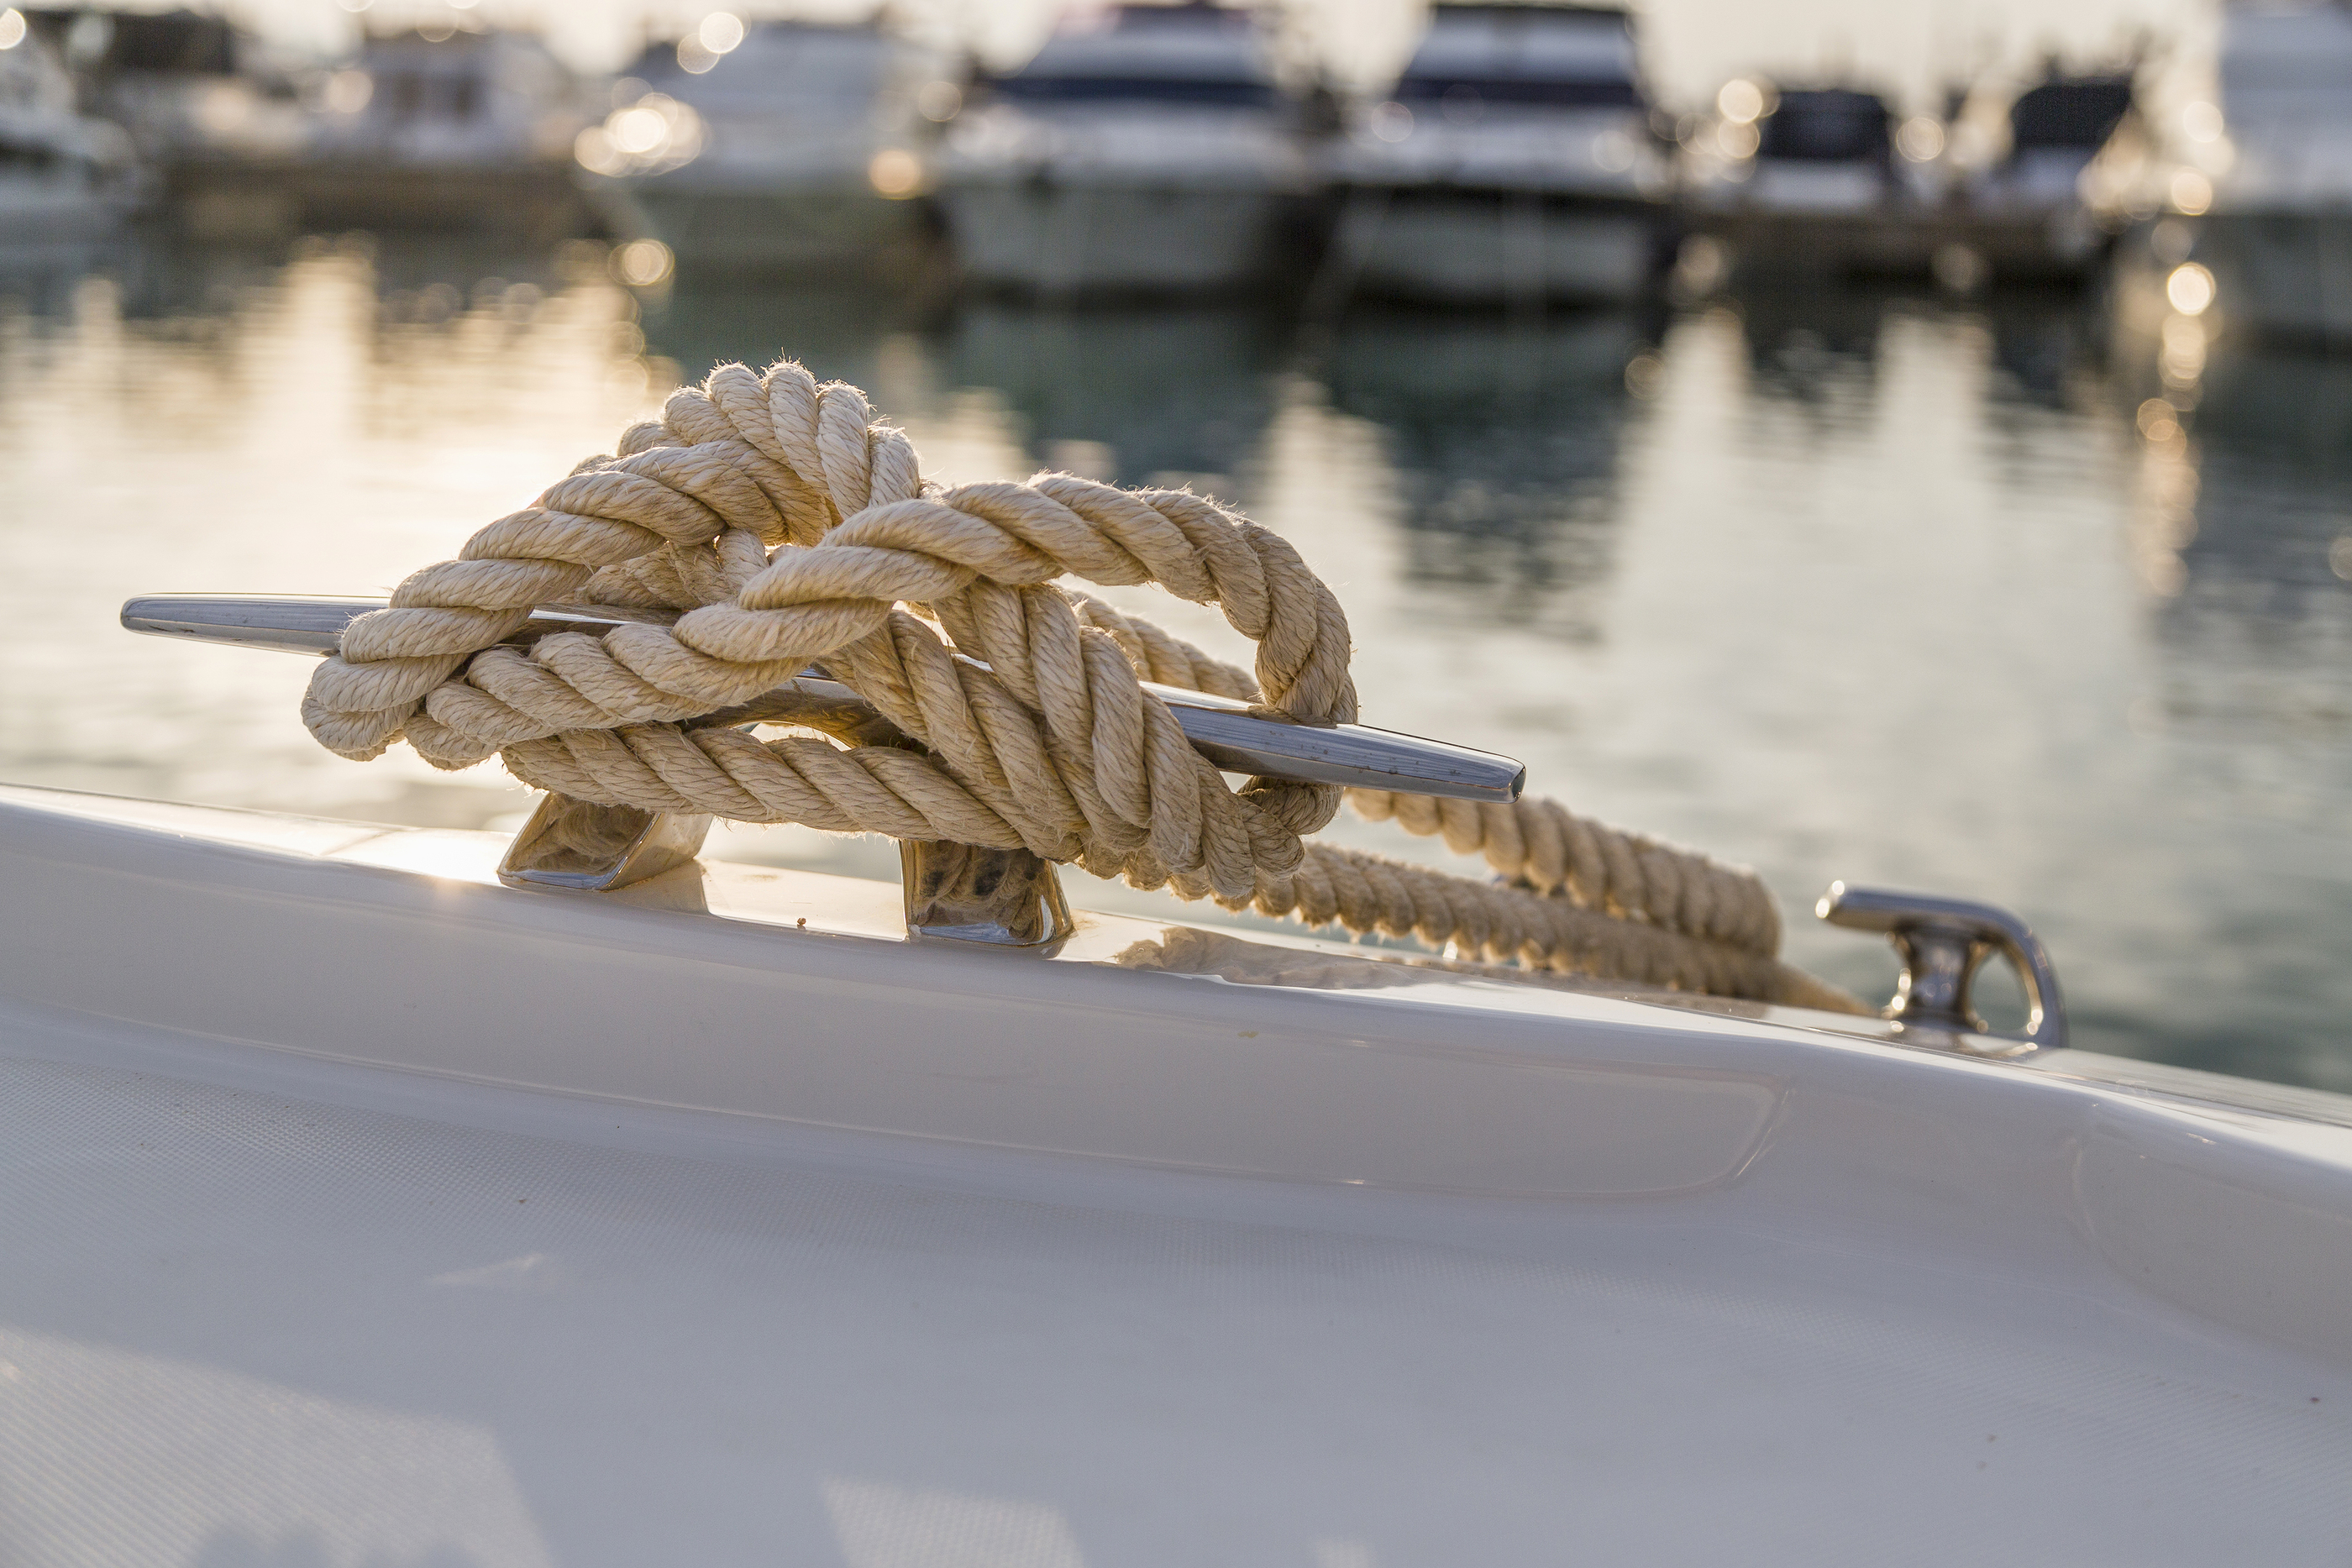 Close-up Nautical Knot Rope Tied Around Stake On Boat Or Ship, Boat Mooring Rope